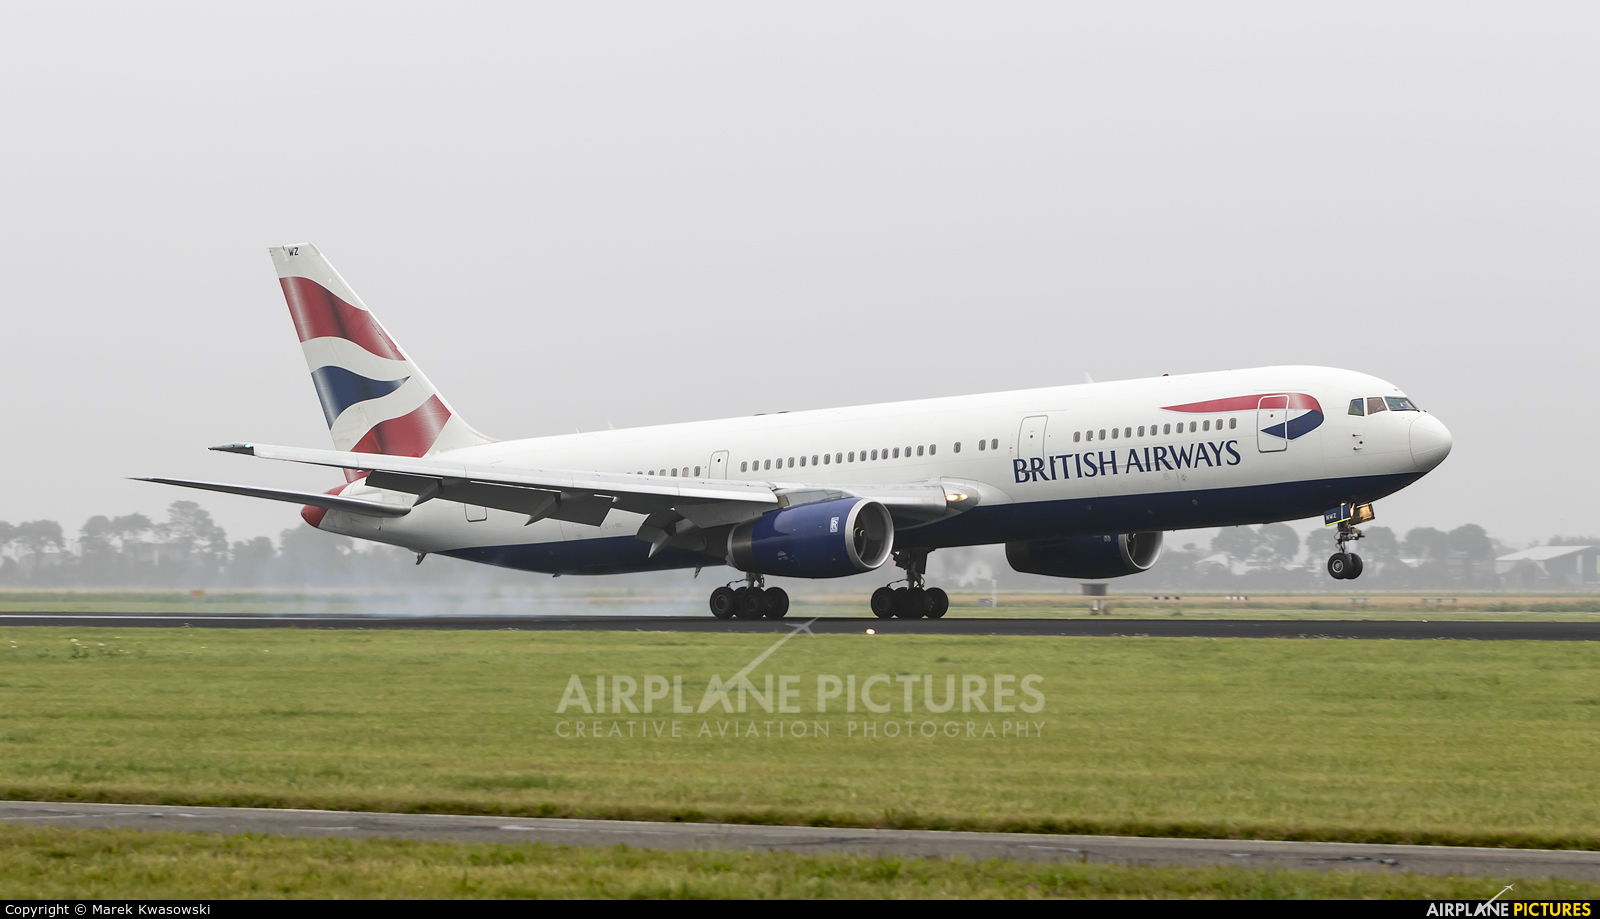 British Airways G-BNWZ aircraft at Amsterdam - Schiphol